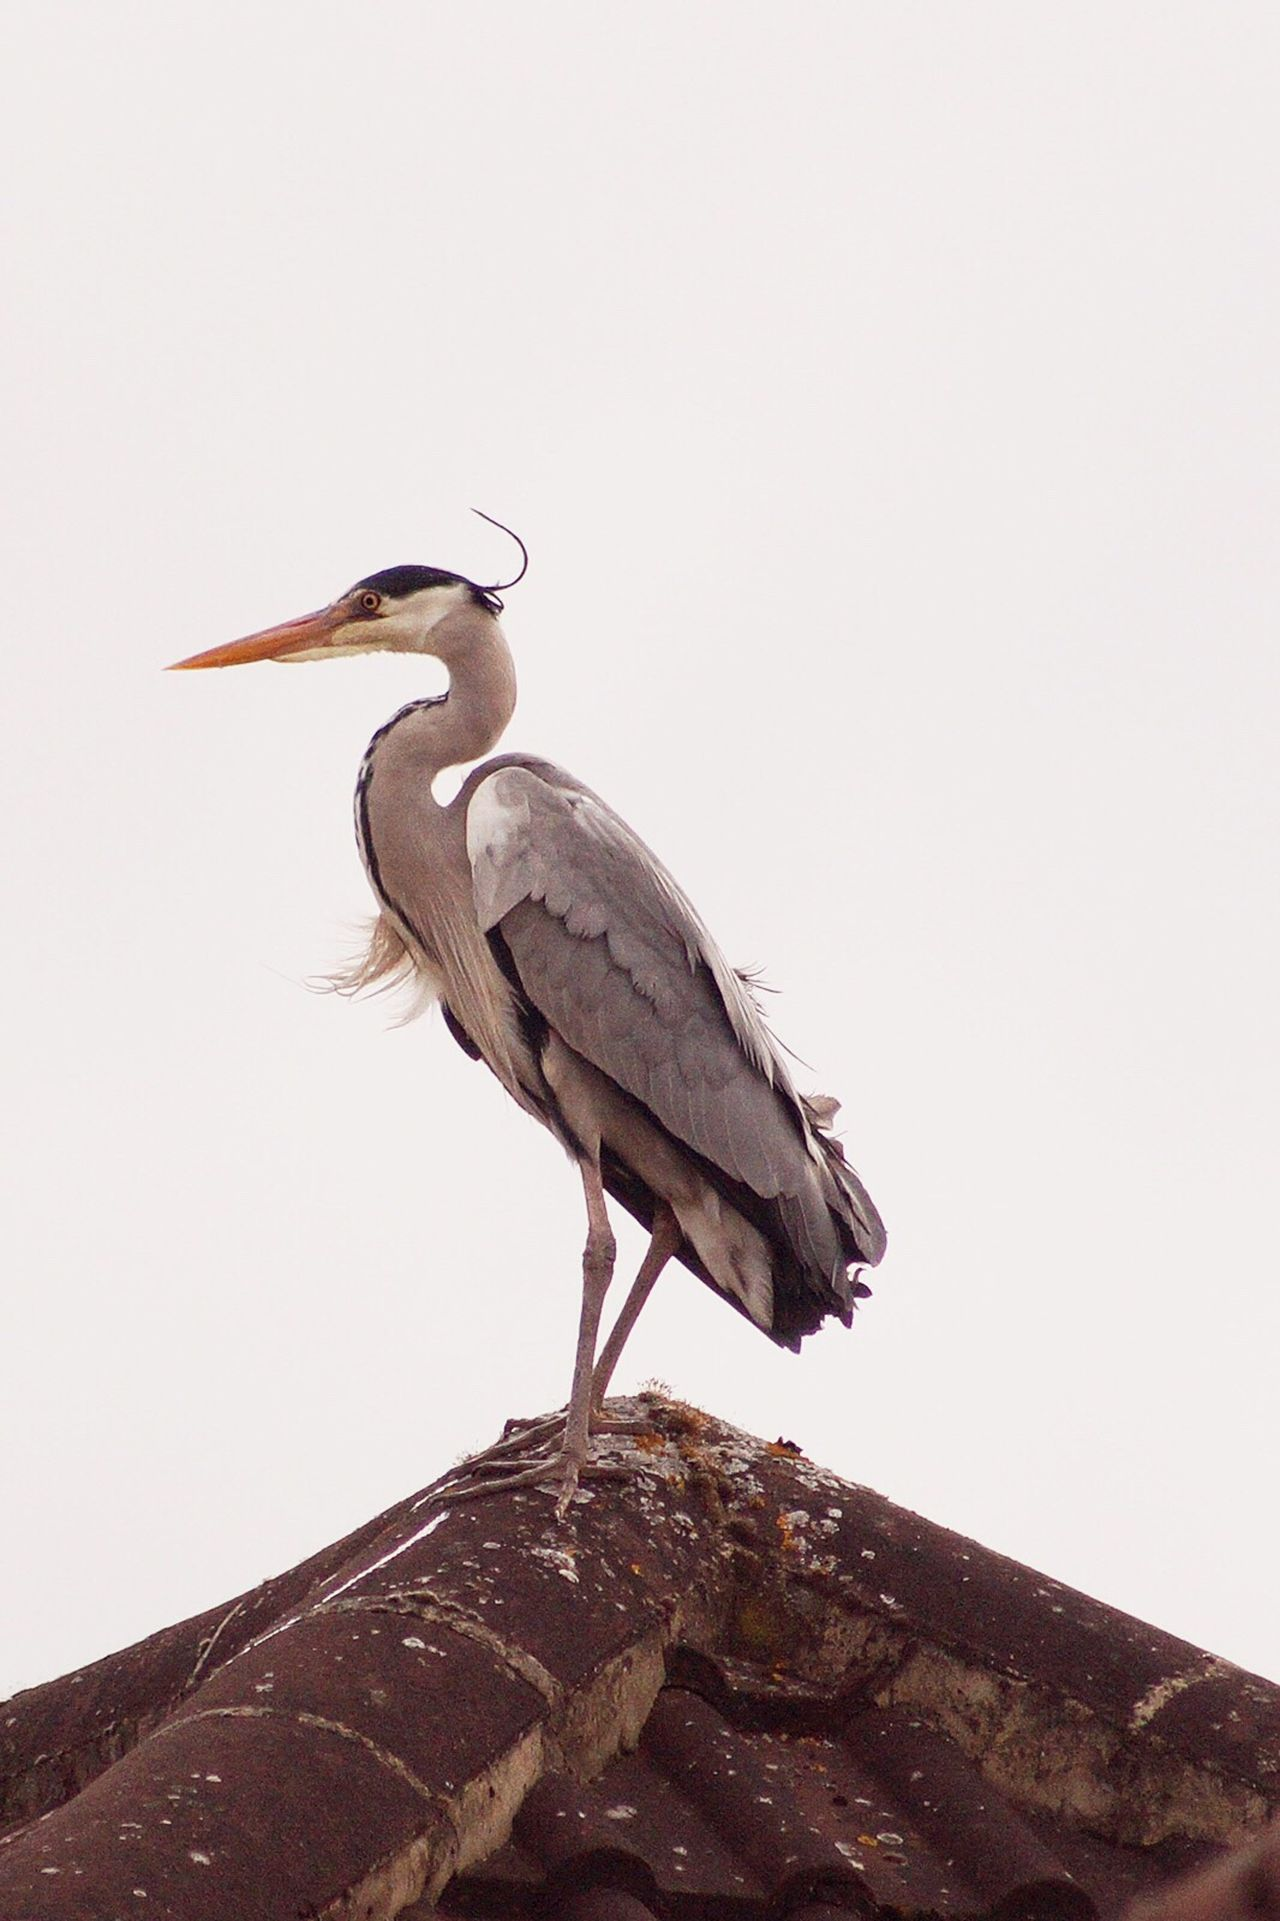 When your the king of the castle Bird Animals In The Wild Animal Themes Perching One Animal Clear Sky Animal Wildlife Heron Day No People Gray Heron Outdoors Nature Full Length Beauty In Nature Sky StoryBirdSeries EyeEm Best Shots EyeEmBestPics EyeEm Gallery Birdwatching Beauty In Nature Animals In The Wild Creativity Valuable